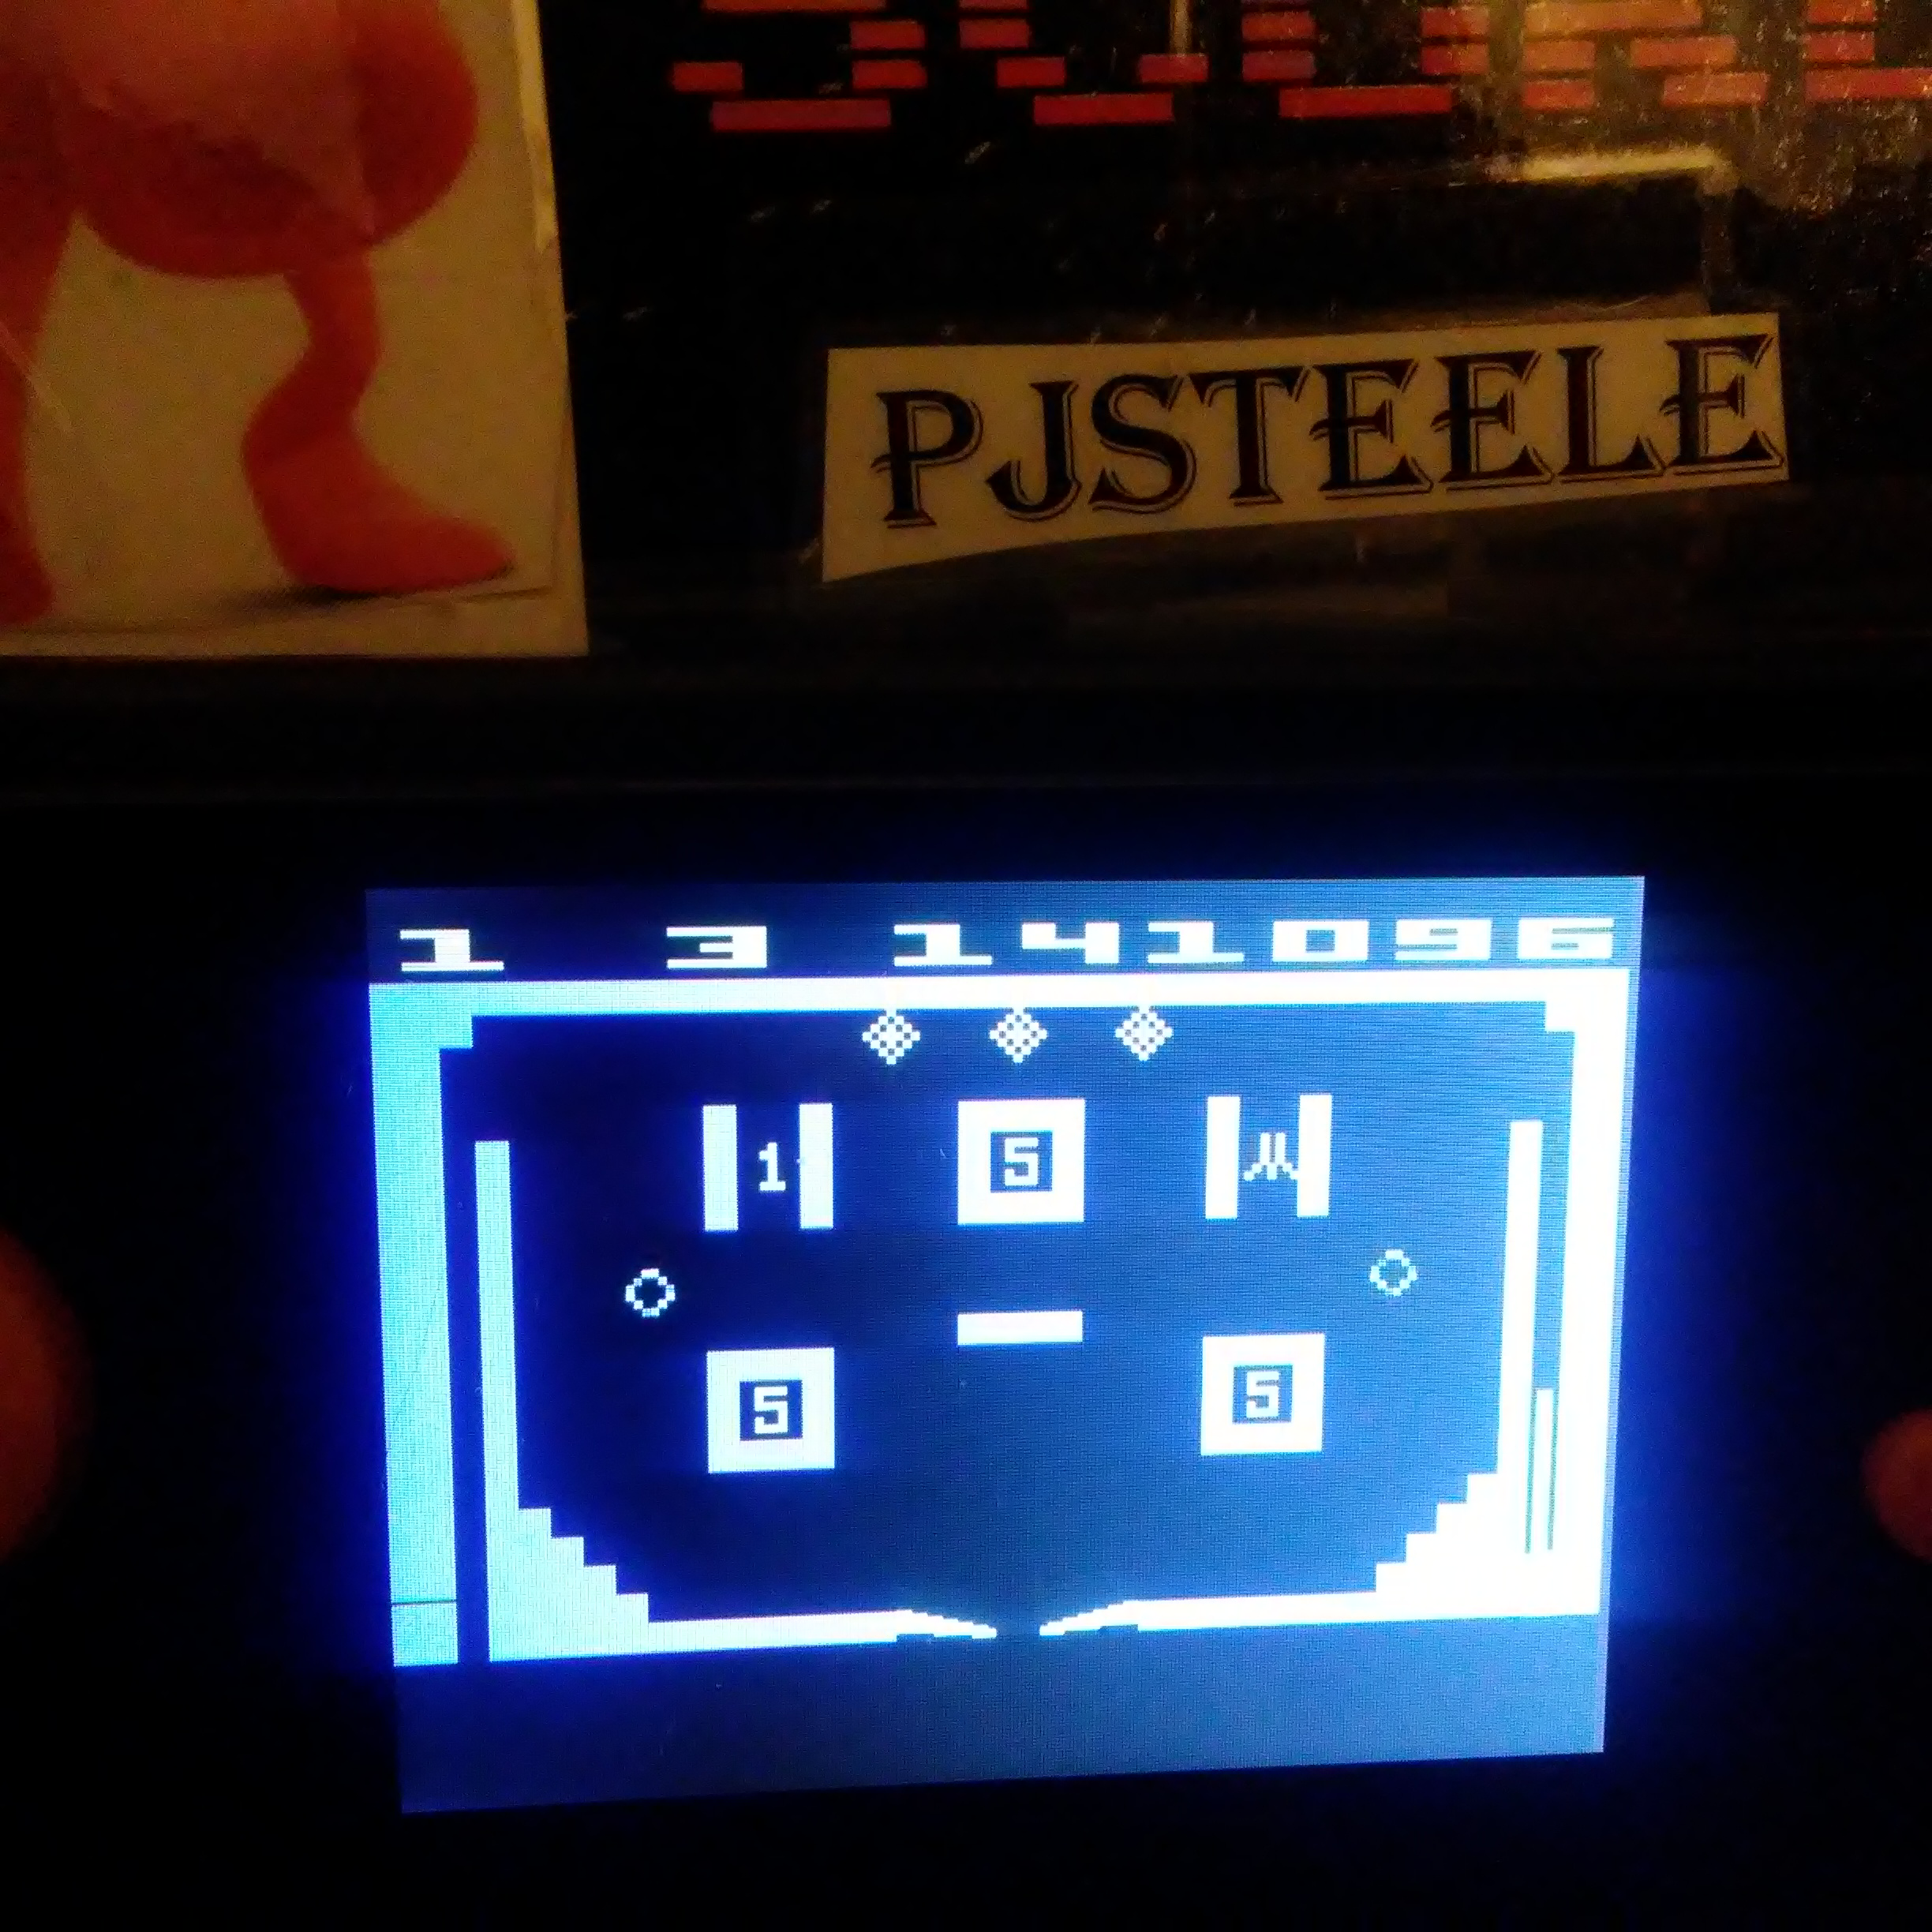 Pjsteele: Video Pinball (Atari 2600 Emulated Novice/B Mode) 141,096 points on 2017-12-26 18:33:51